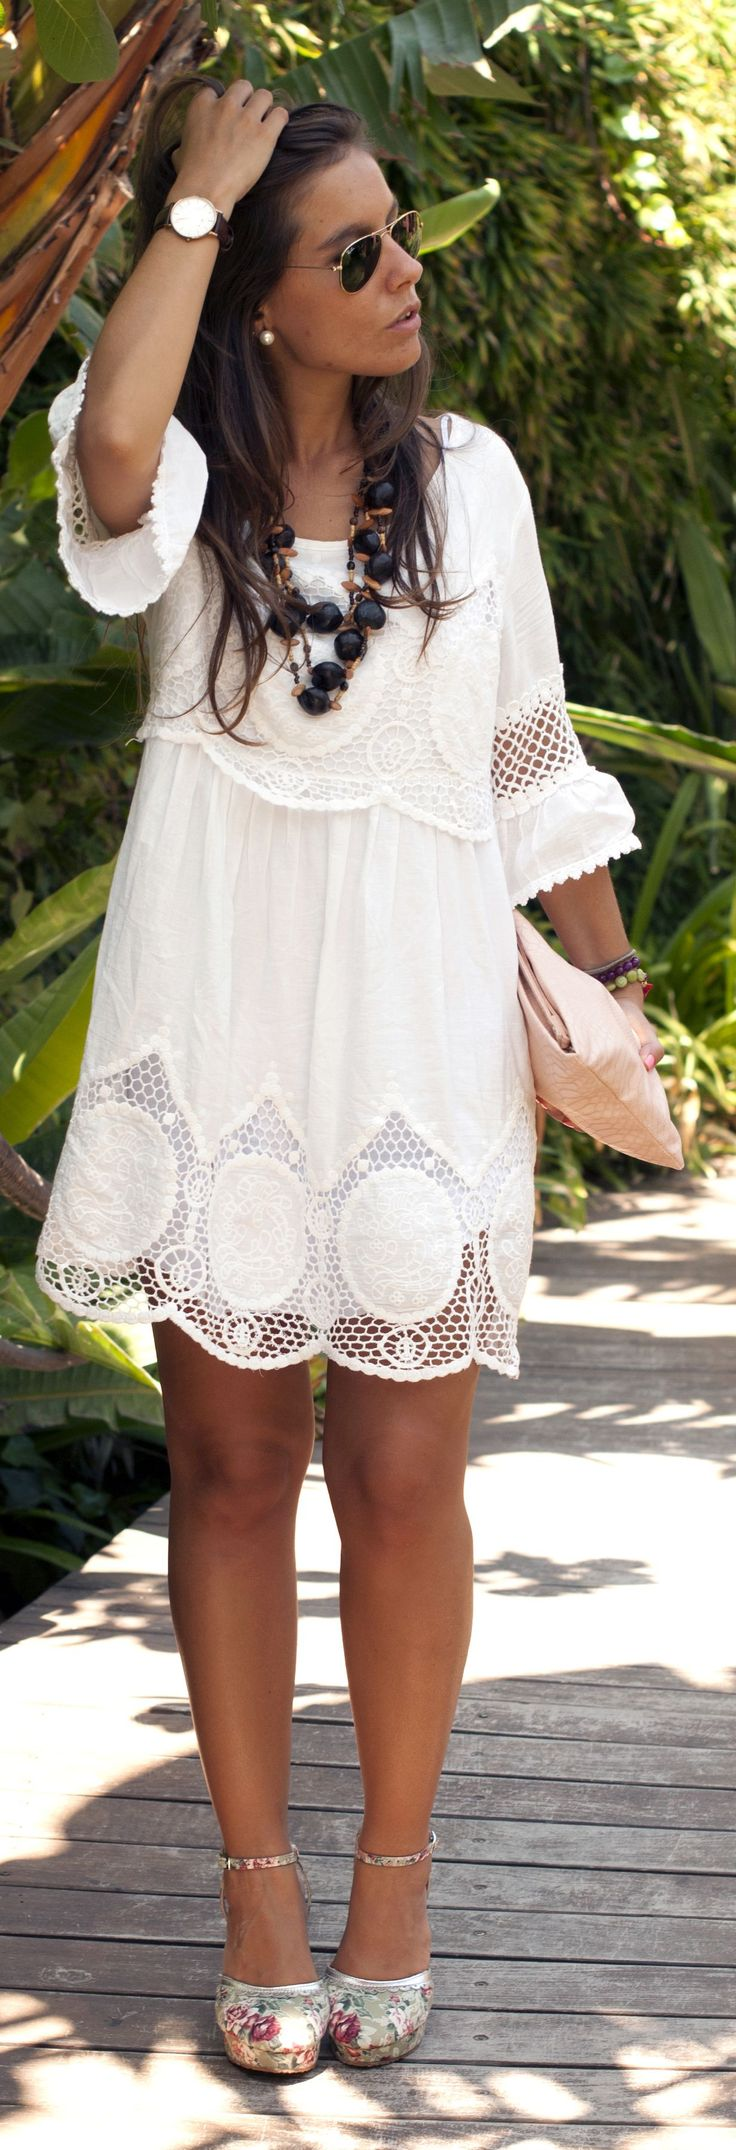 Street style | White boho summer dress